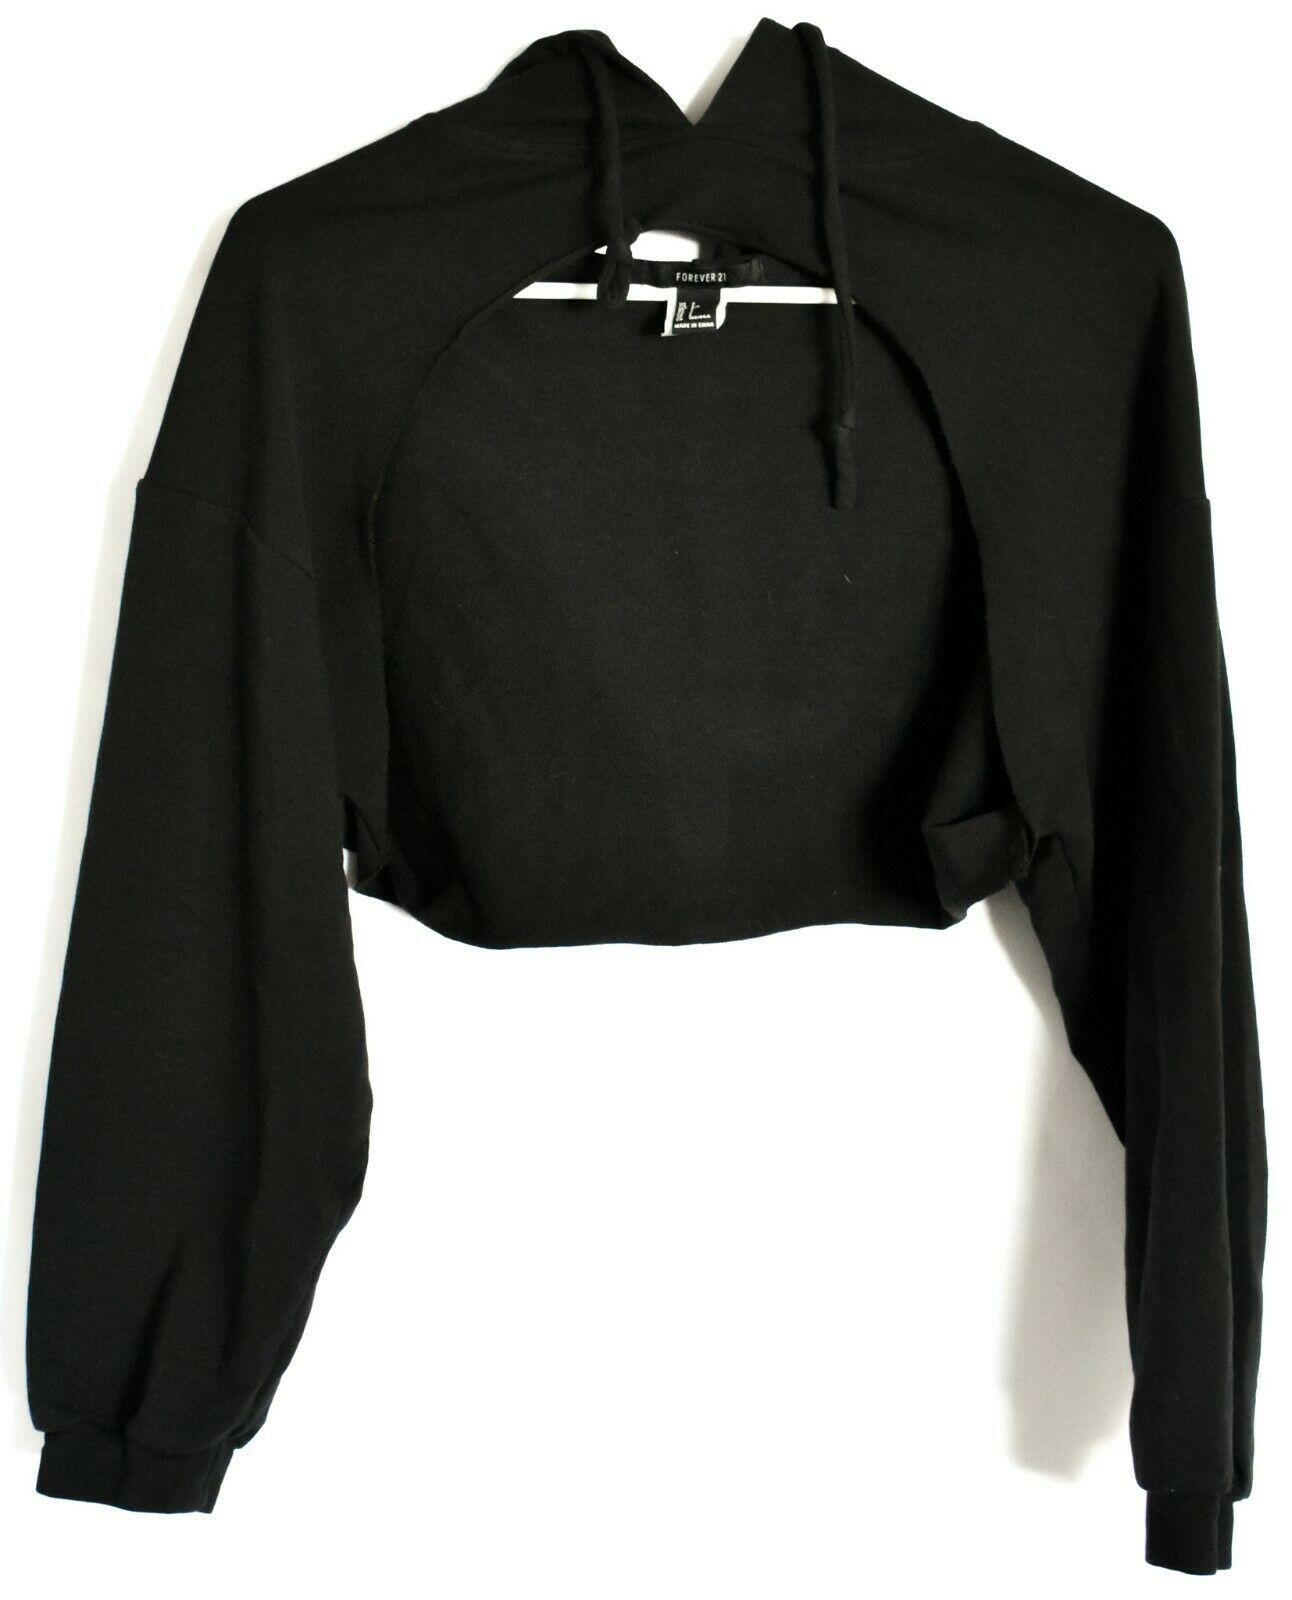 Forever 21 Black Open Bust Cut Out Front Long Sleeve Hooded Hoodie Top Size S